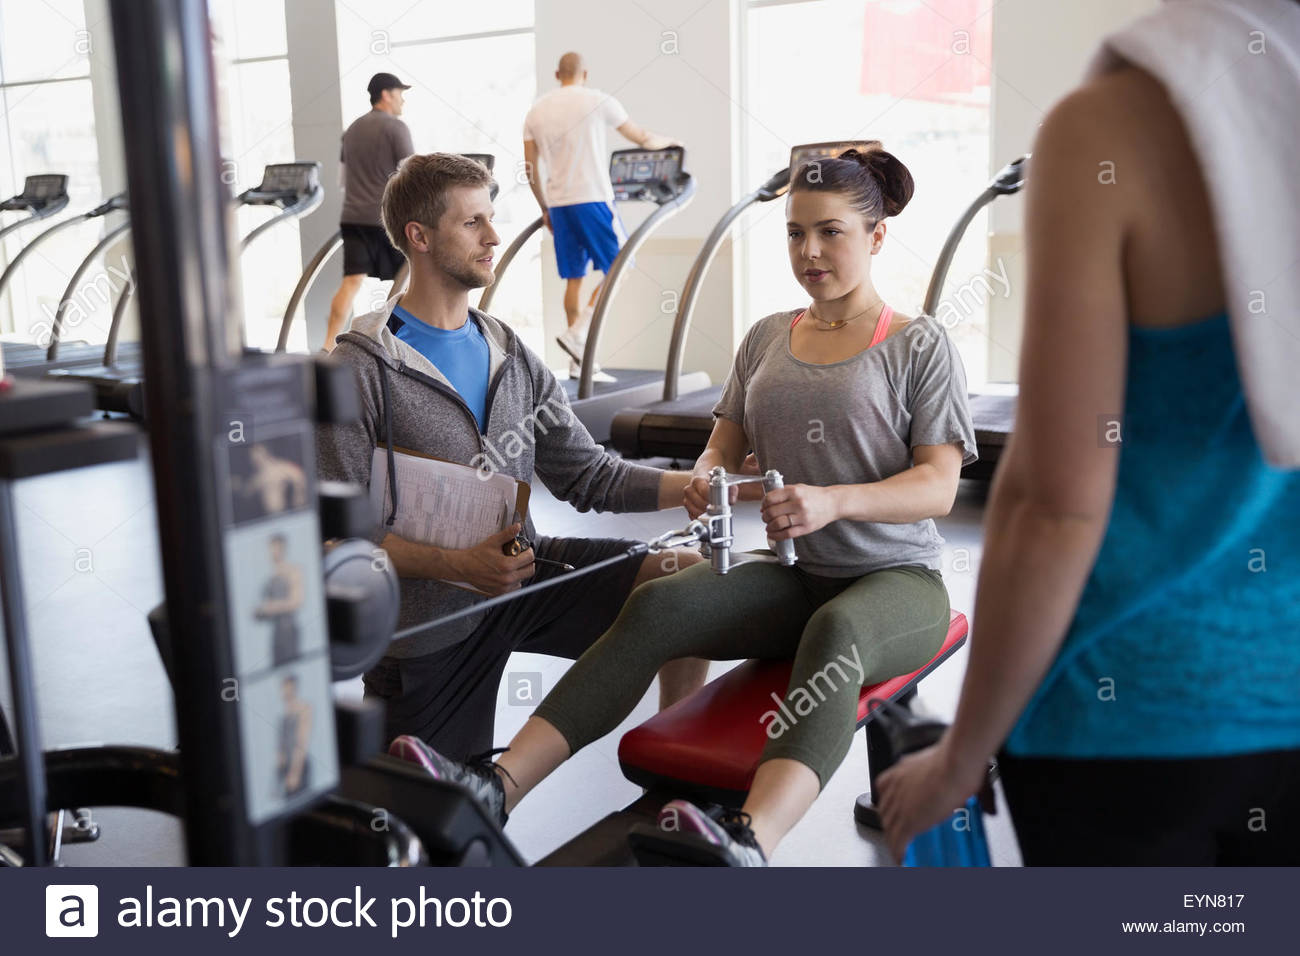 Personal trainer guiding woman seated cable row gym - Stock Image